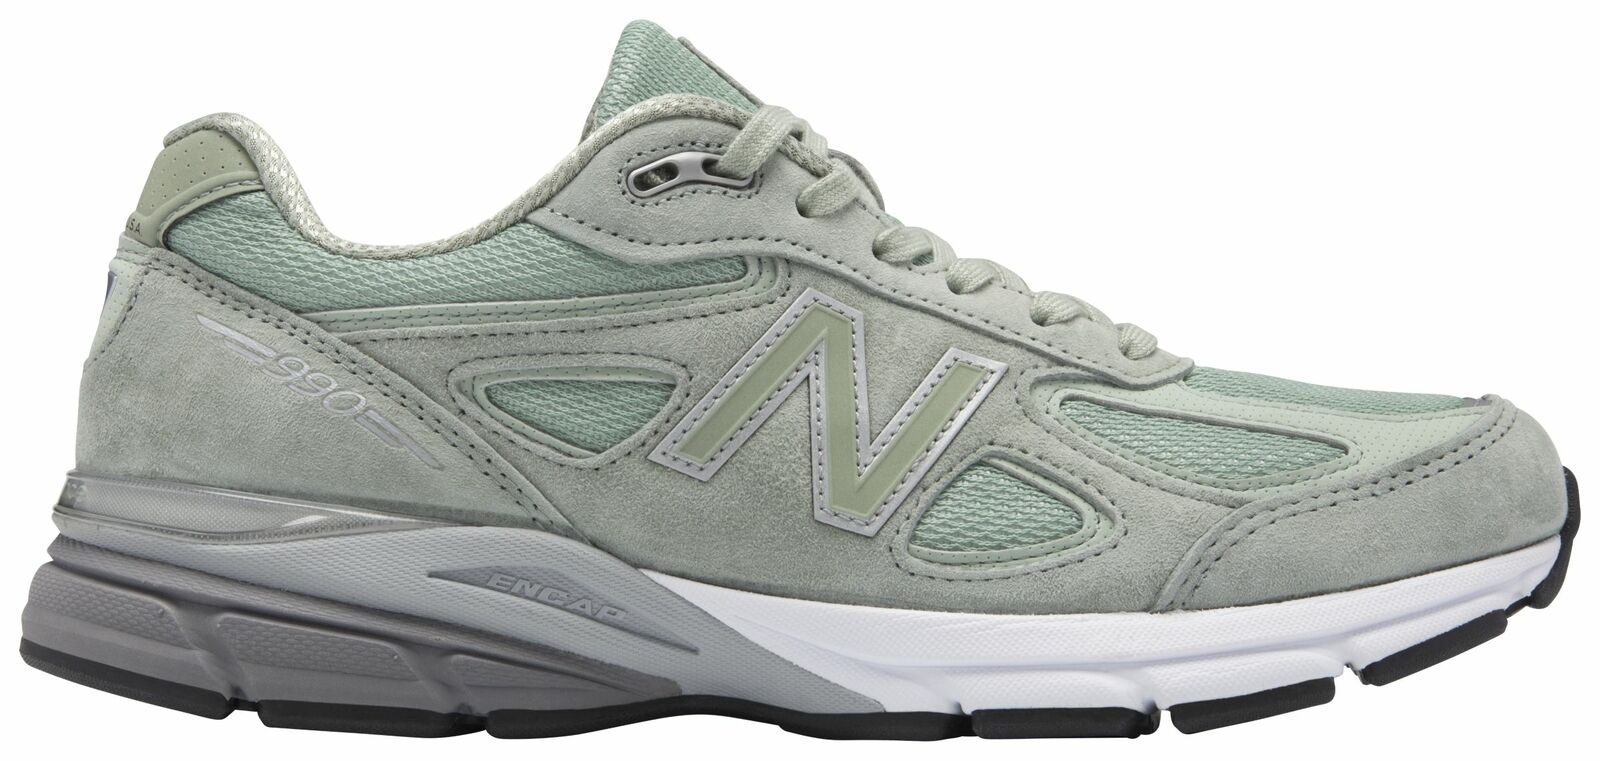 New Balance Homme 990V4 Made in US Chaussures Vert